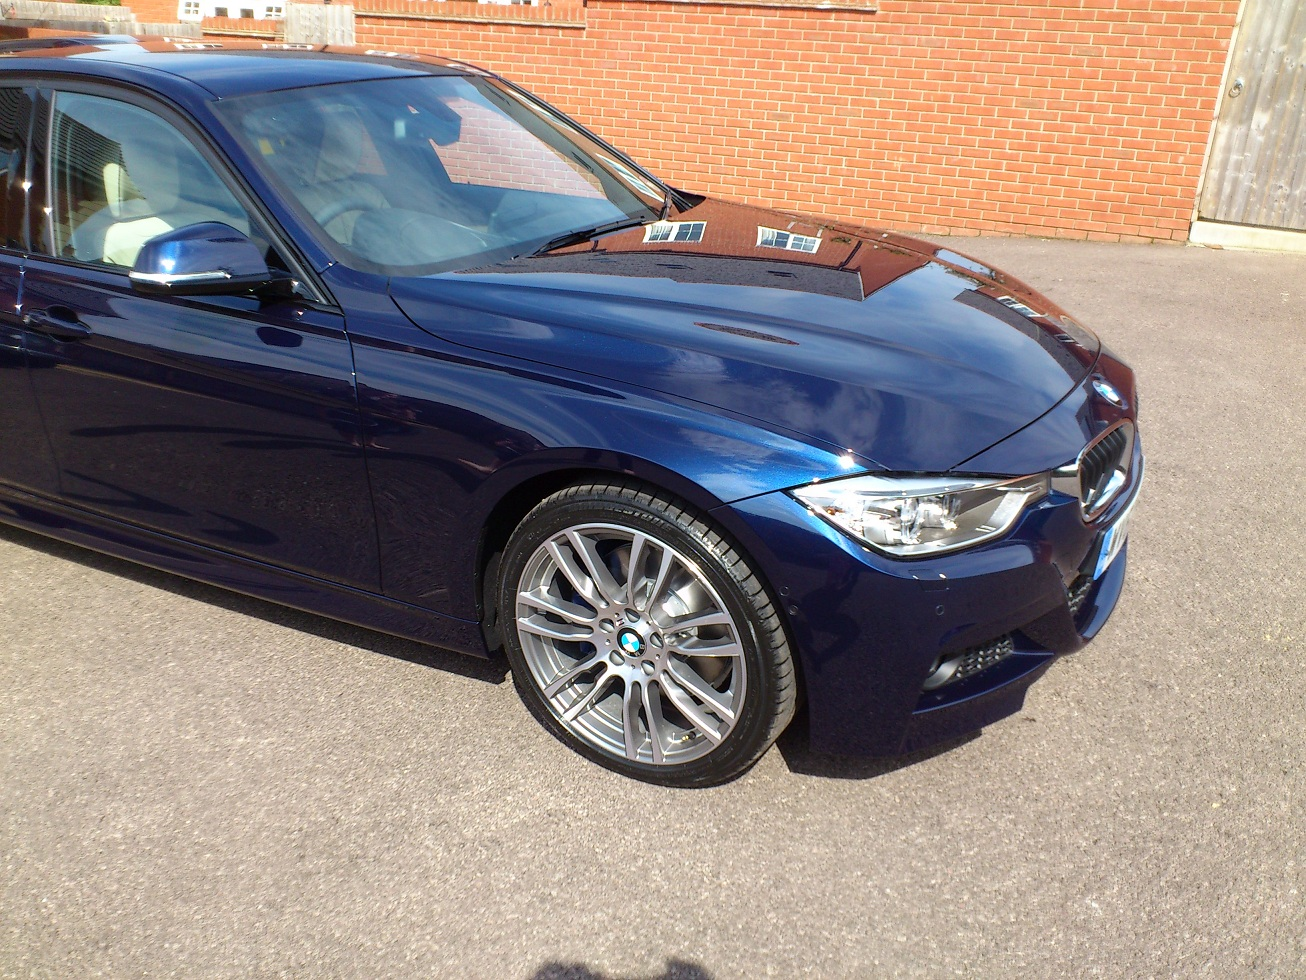 F30 Official Tanzanite Blue F30 Photo Thread